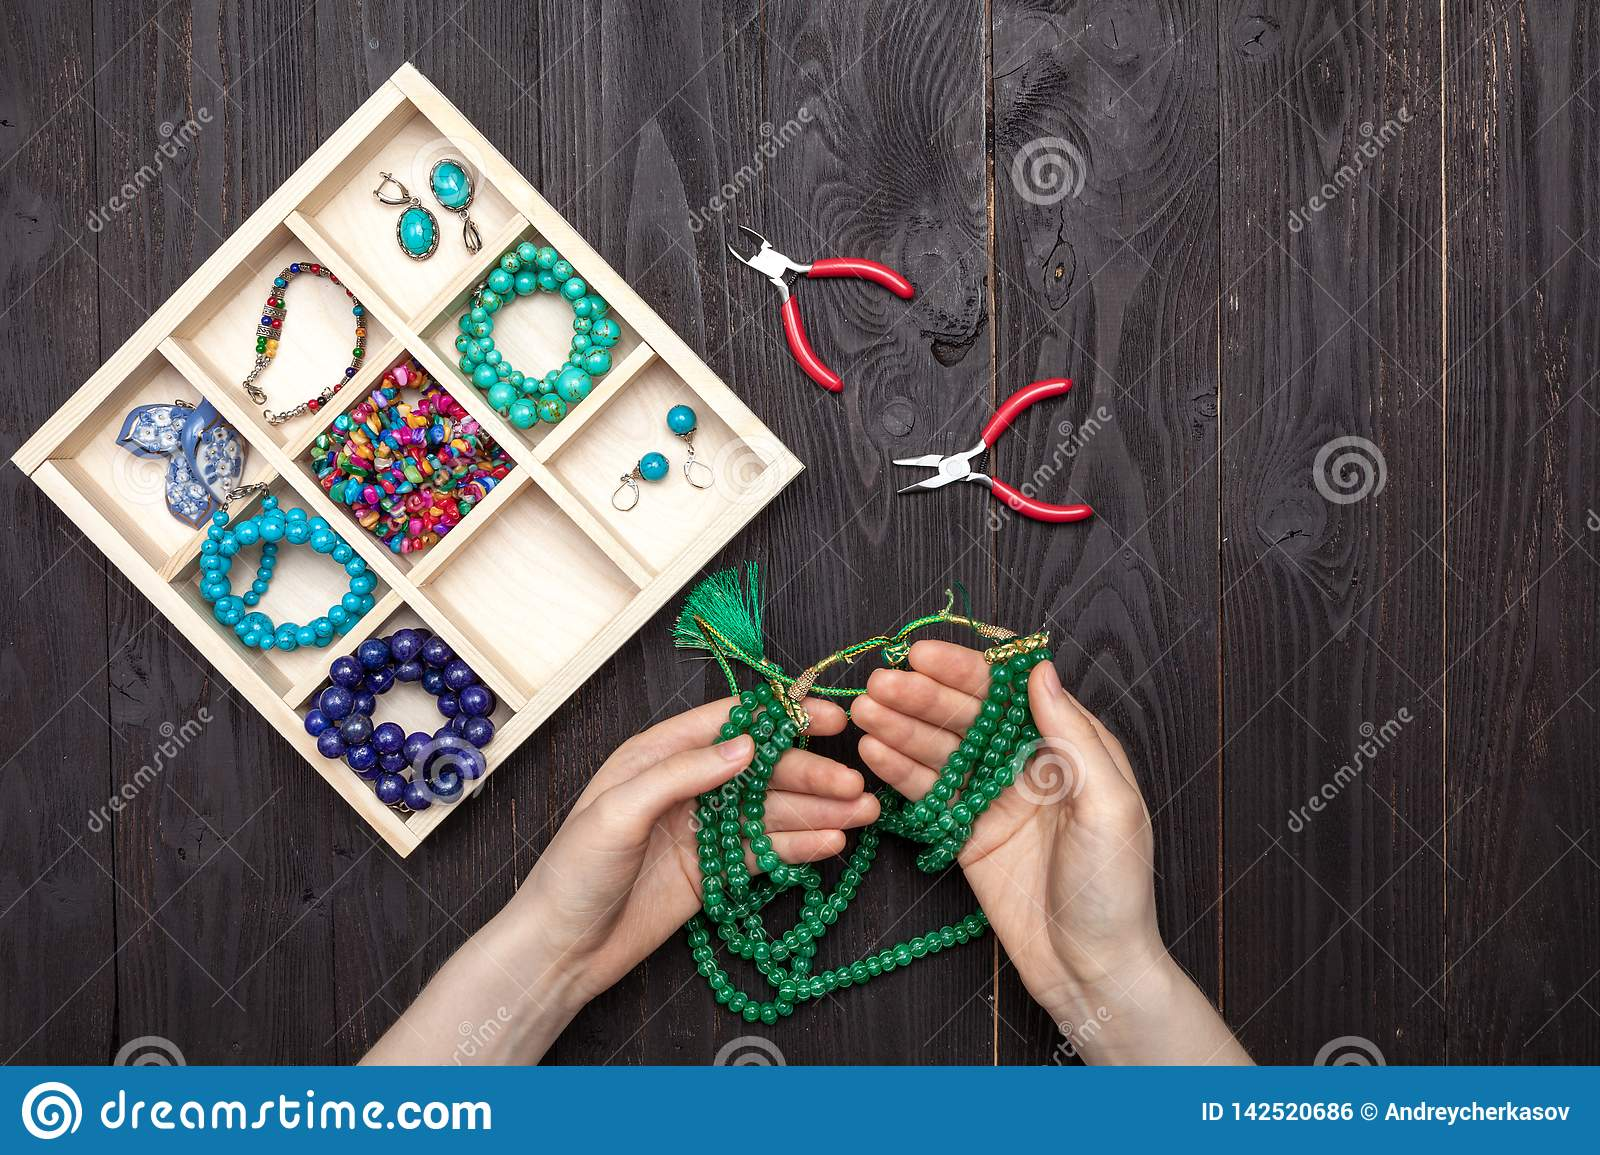 Handwork at home, the girl makes jewelry hands on the table